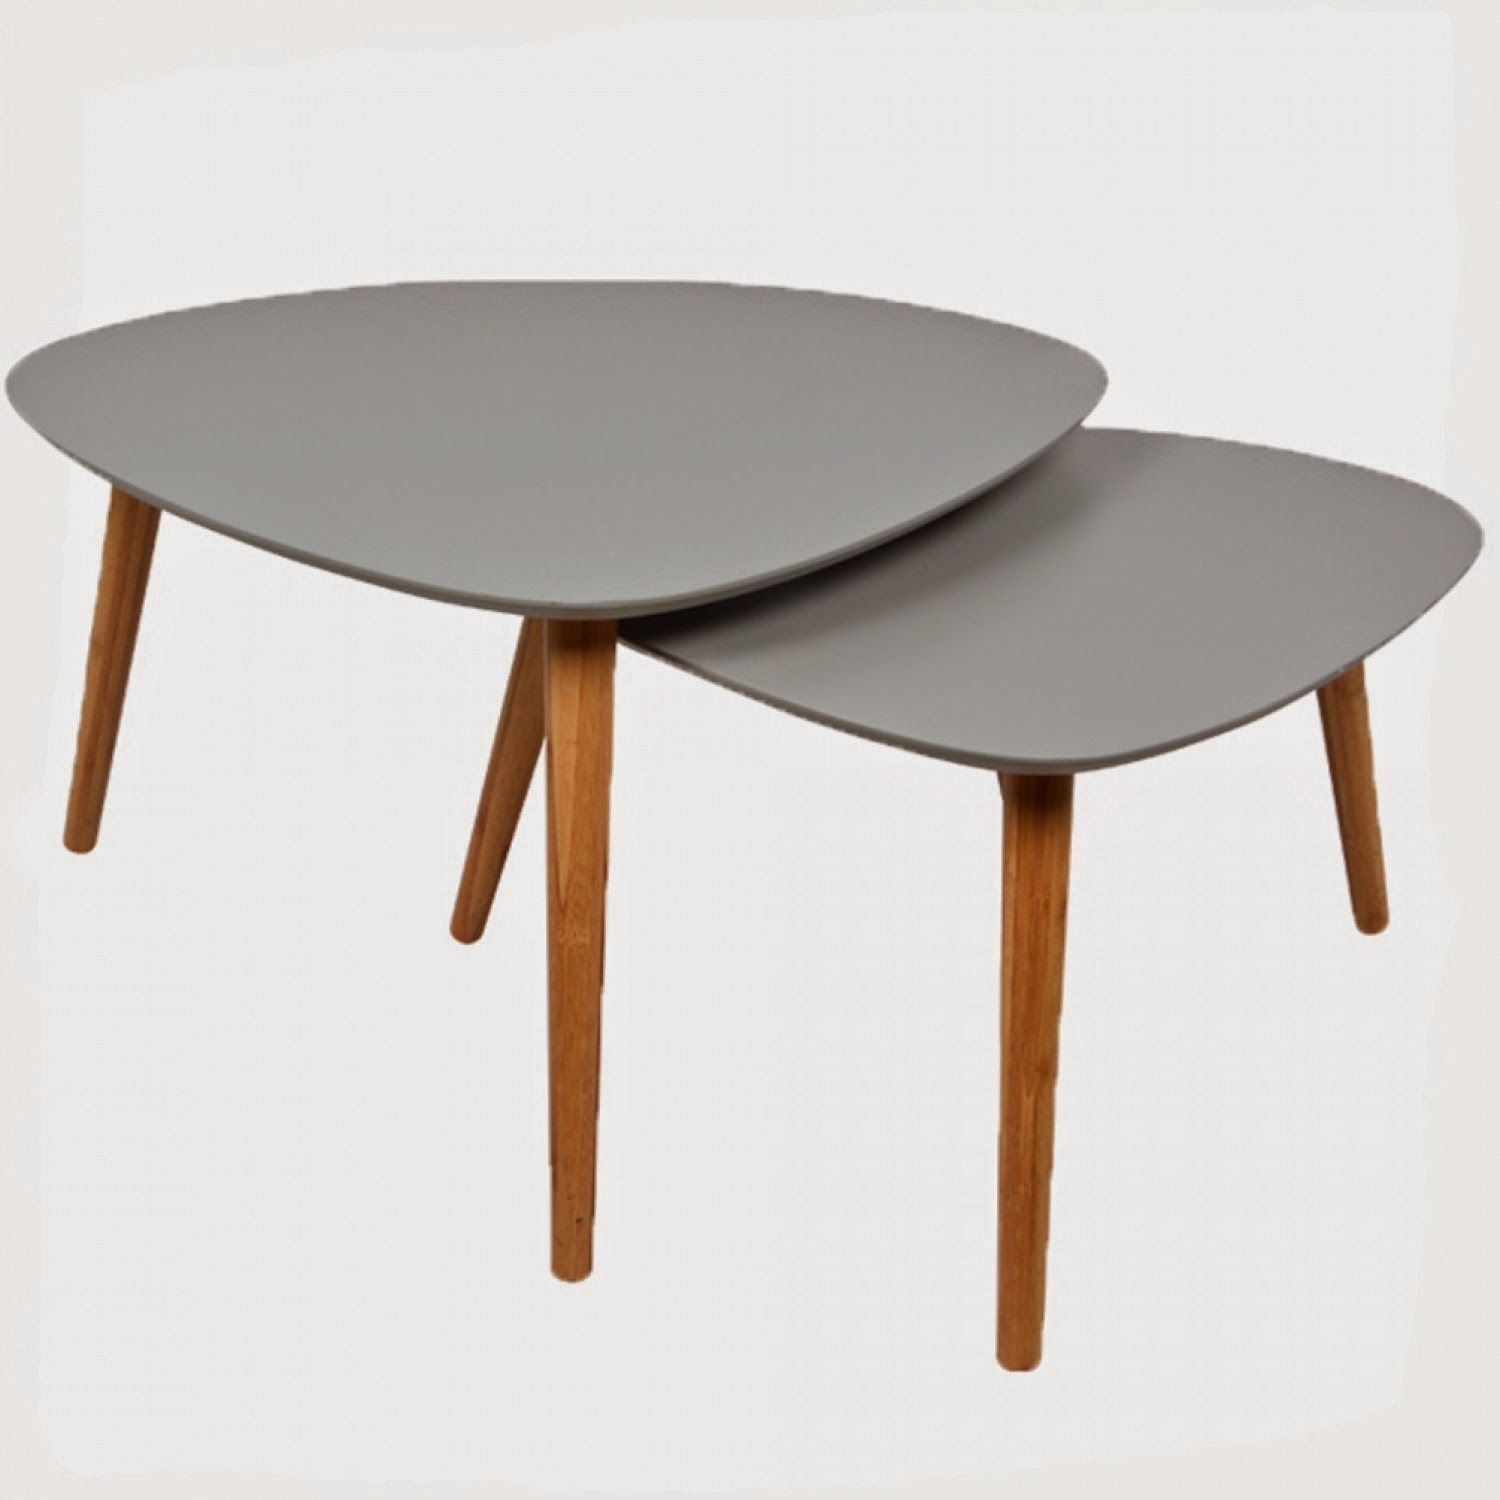 Les tables basses gigognes caract rielle bloglovin - Table basses gigogne ...